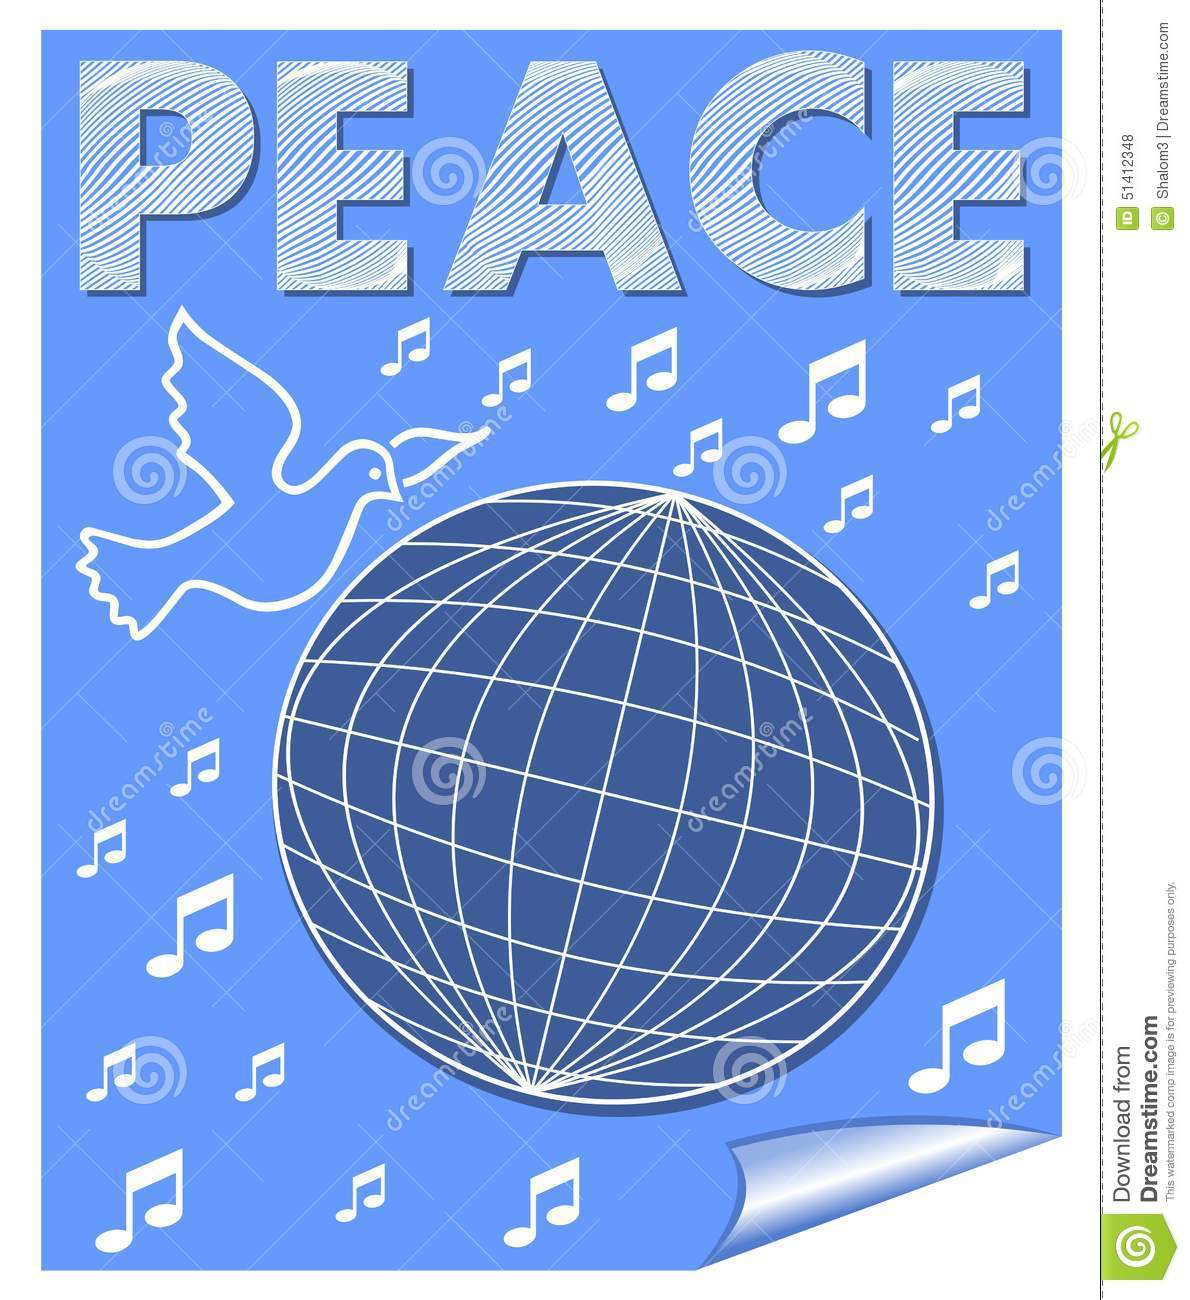 Pieced Together | Engaging Peace